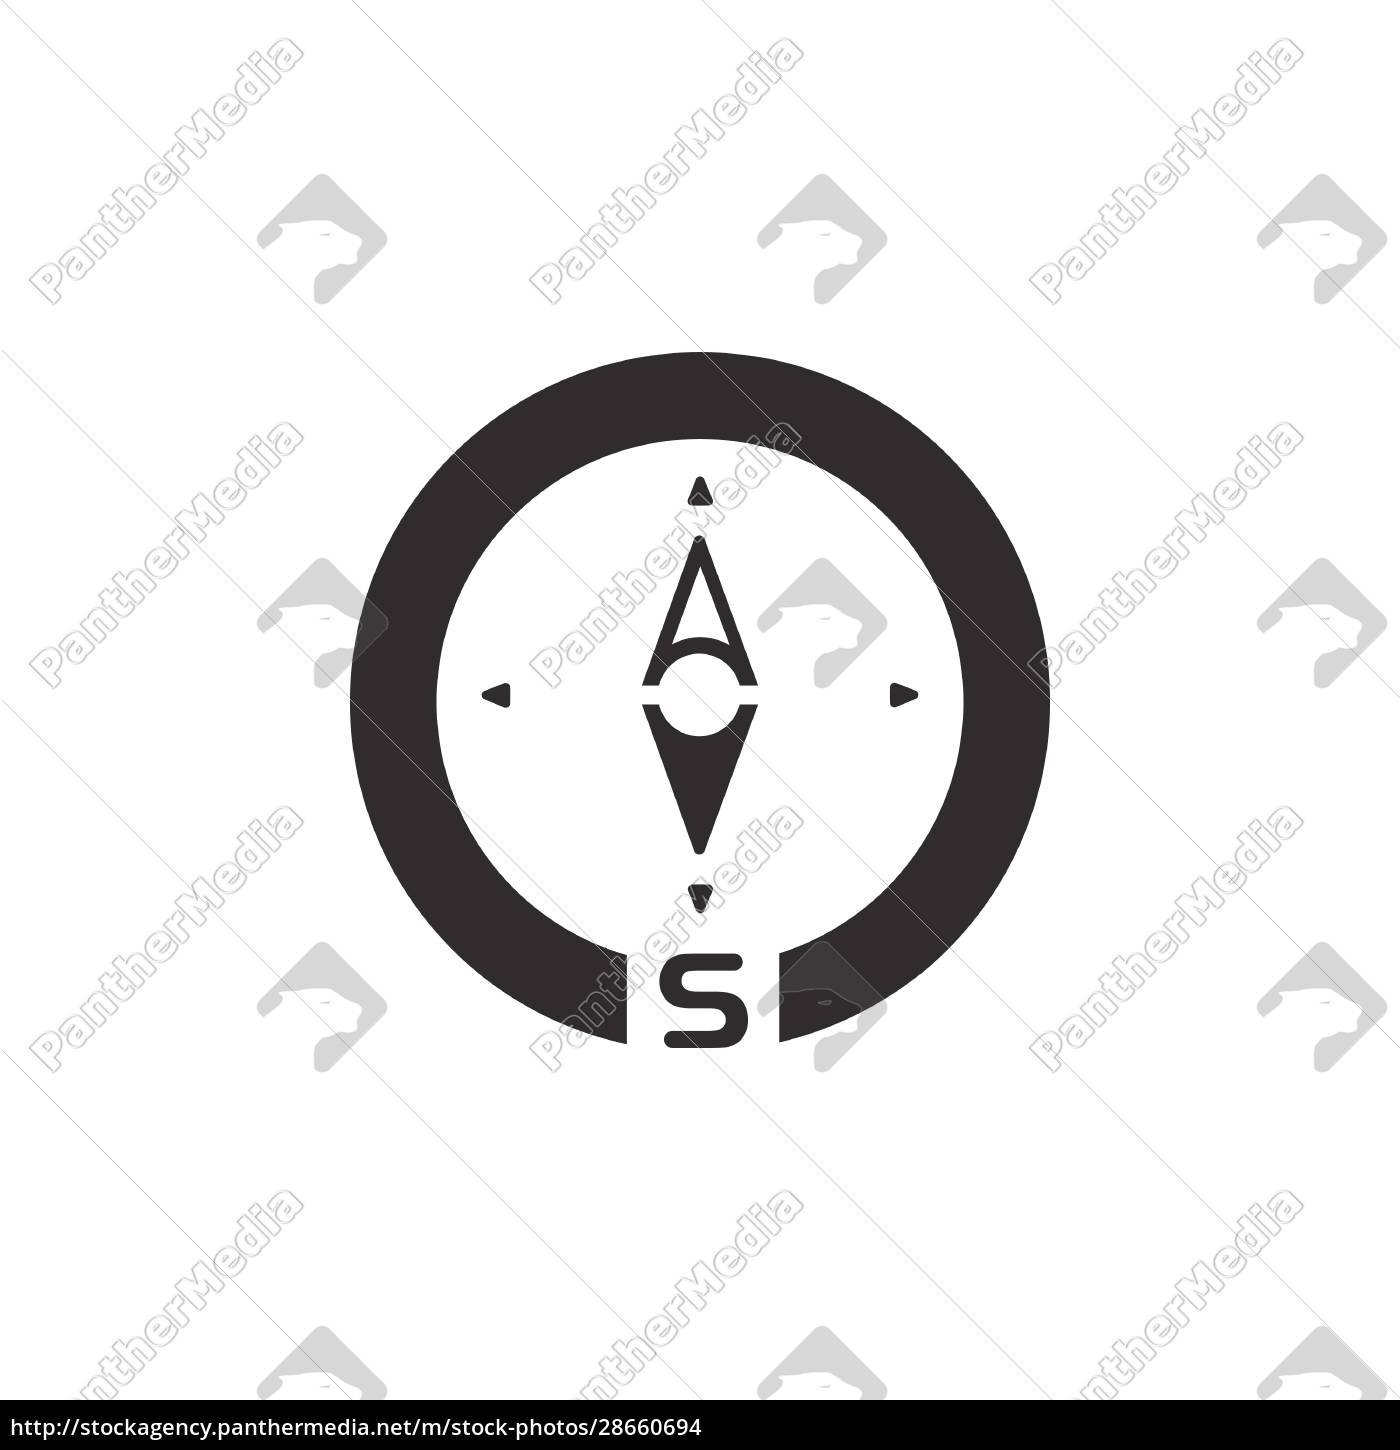 compass., south, direction., icon., weather, glyph - 28660694